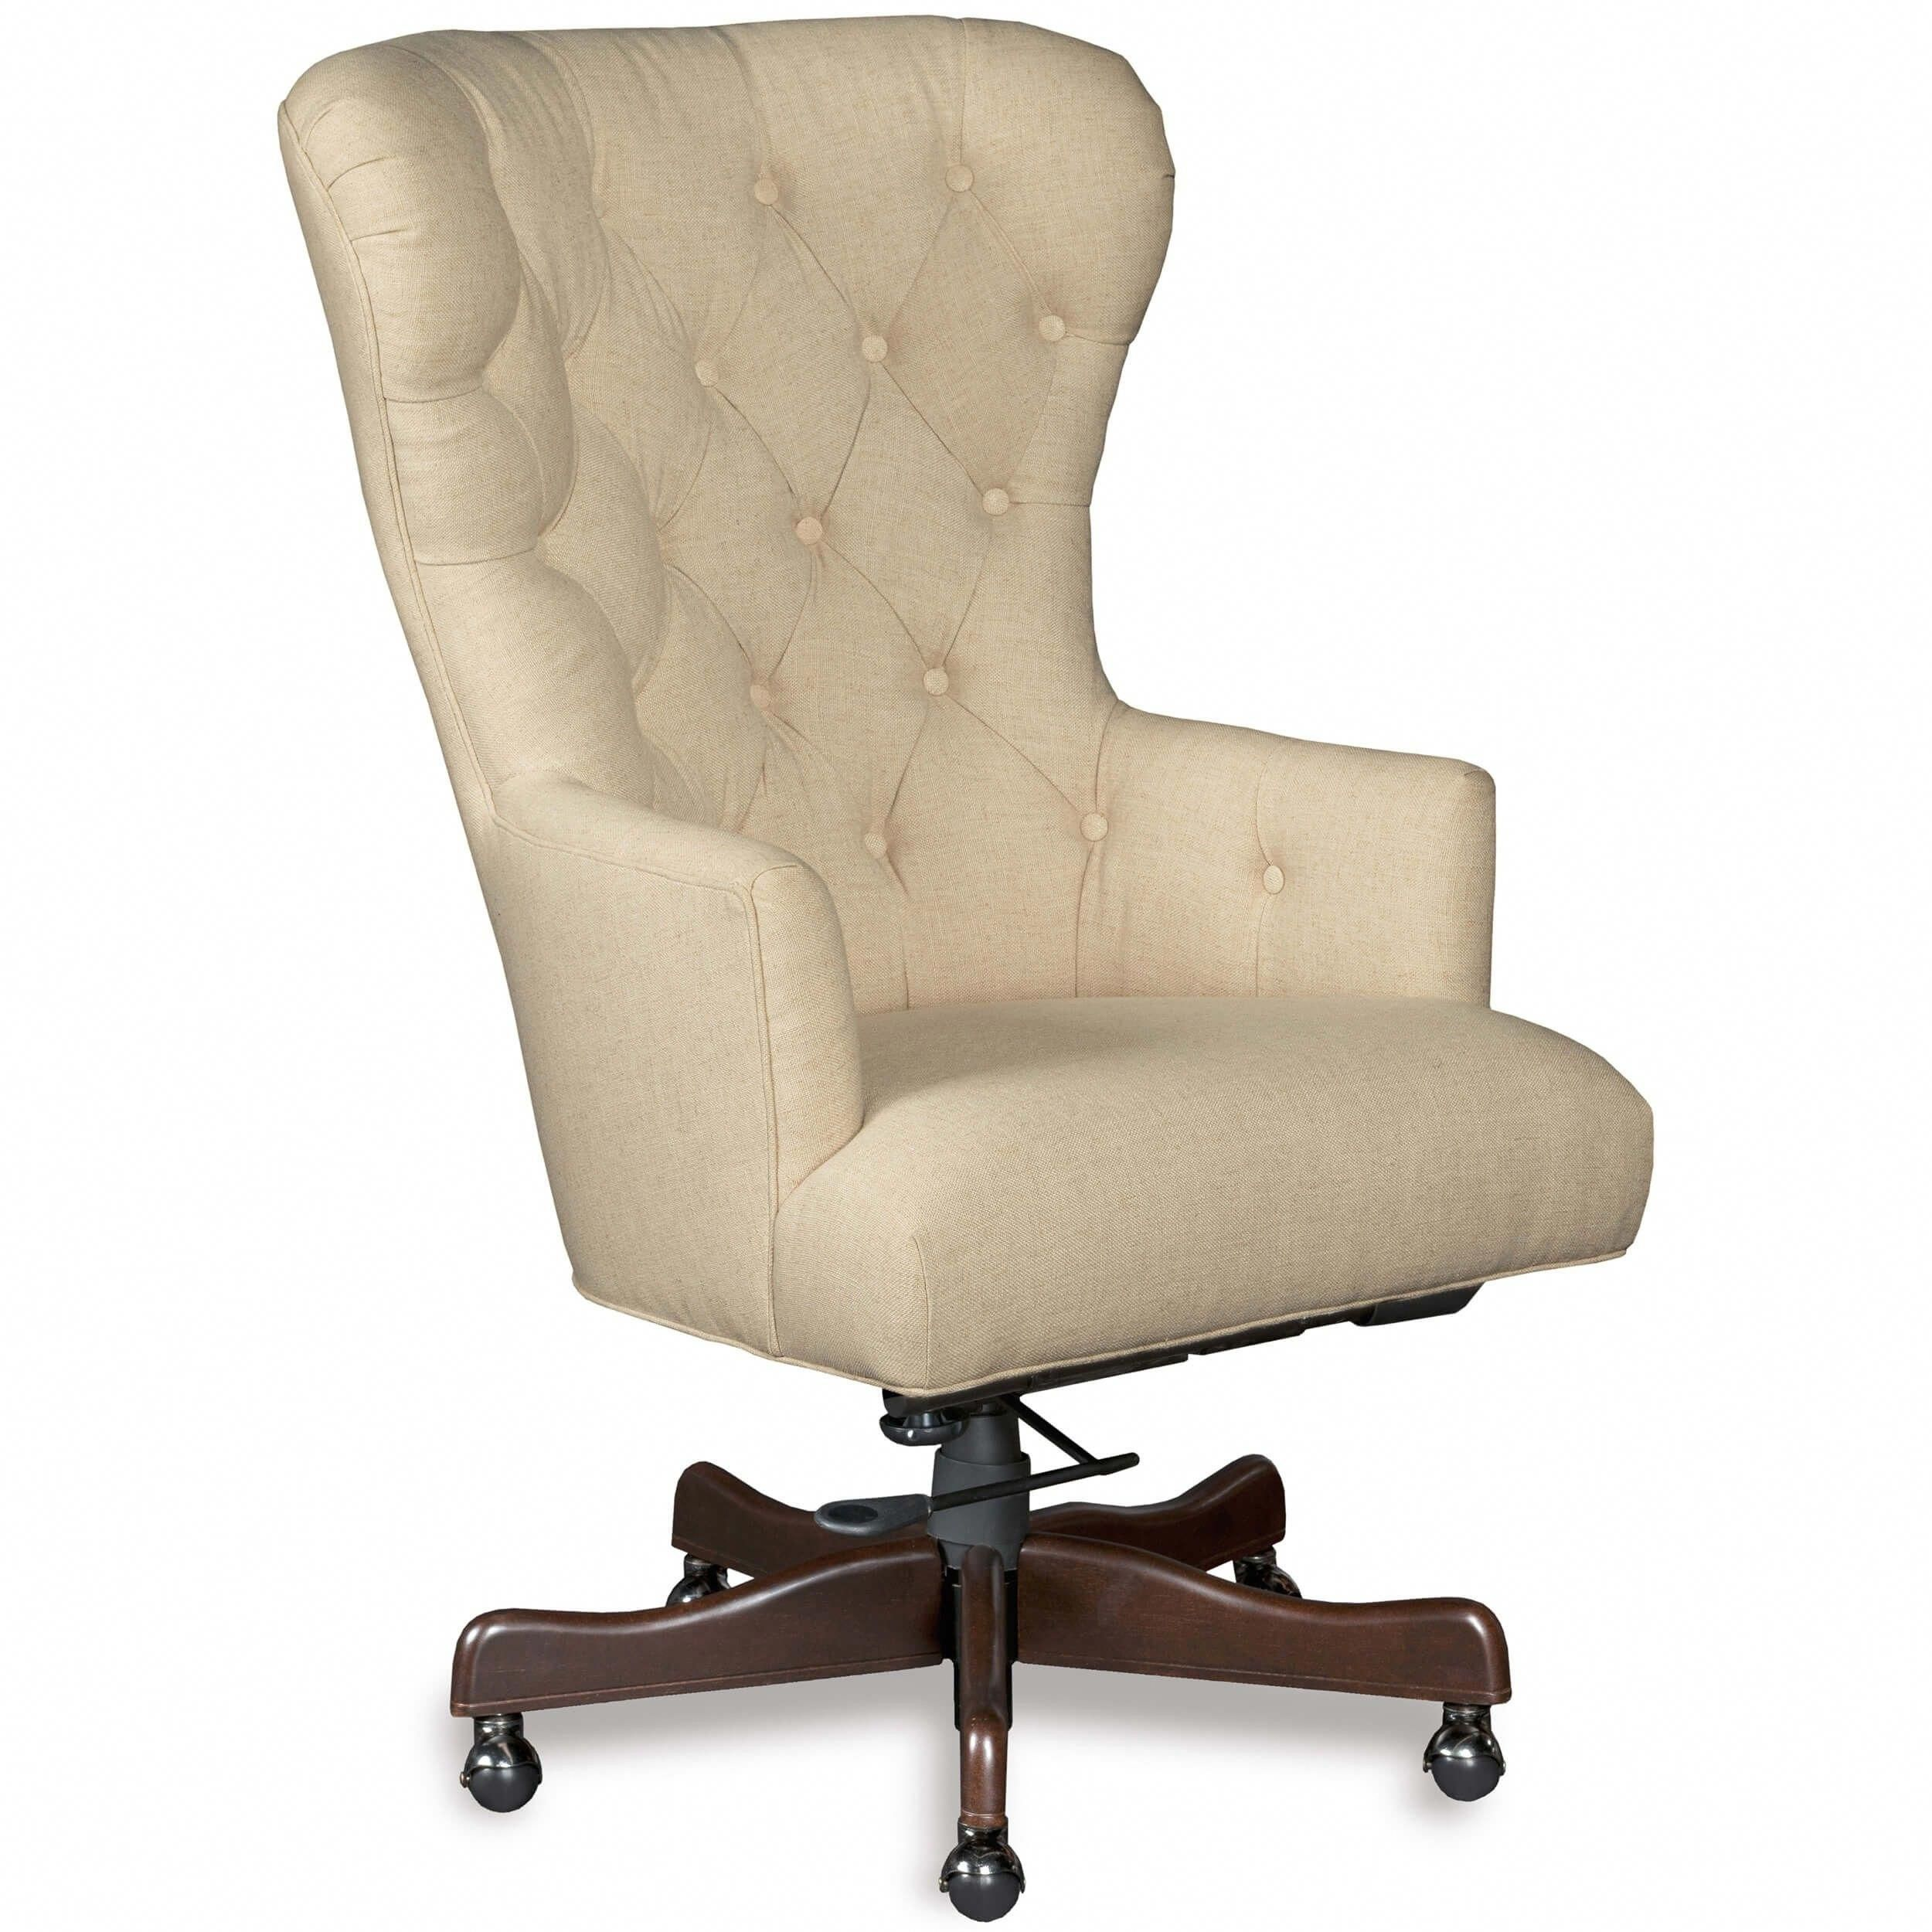 Small Accent Chairs For Living Room #DiningTableChairs